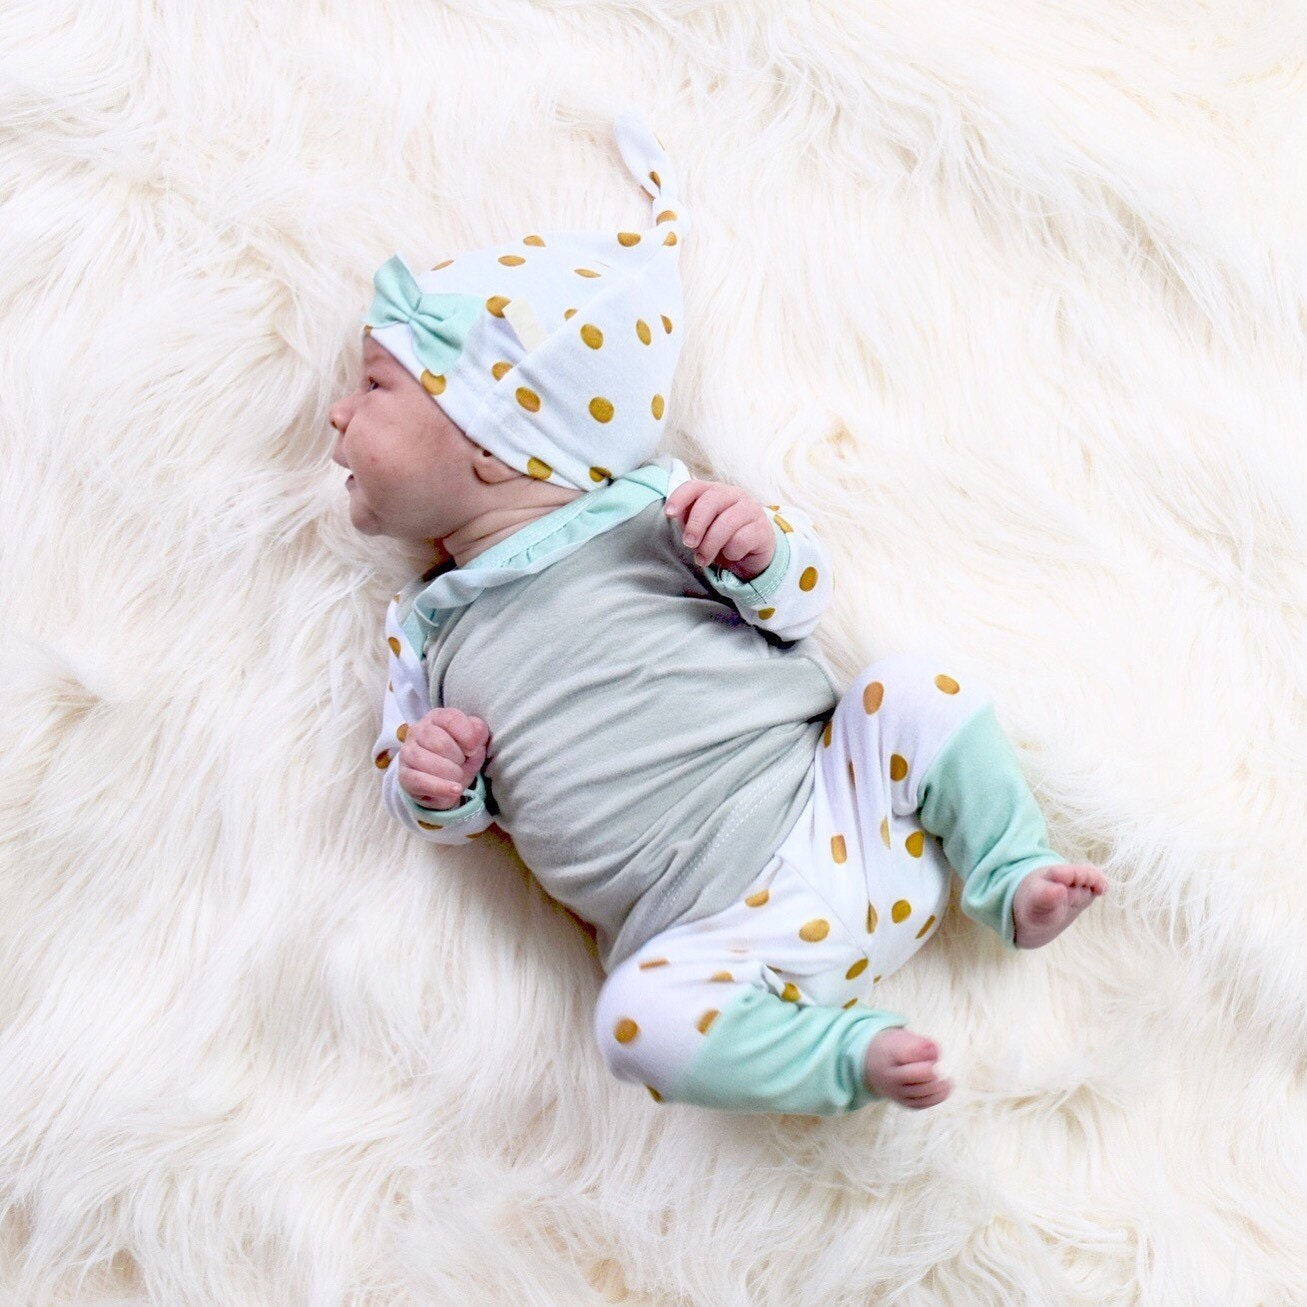 Shop for baby clothing, shoes and accessories at hitseparatingfiletransfer.tk Find everything you need for the baby girl or bay boy in your life.